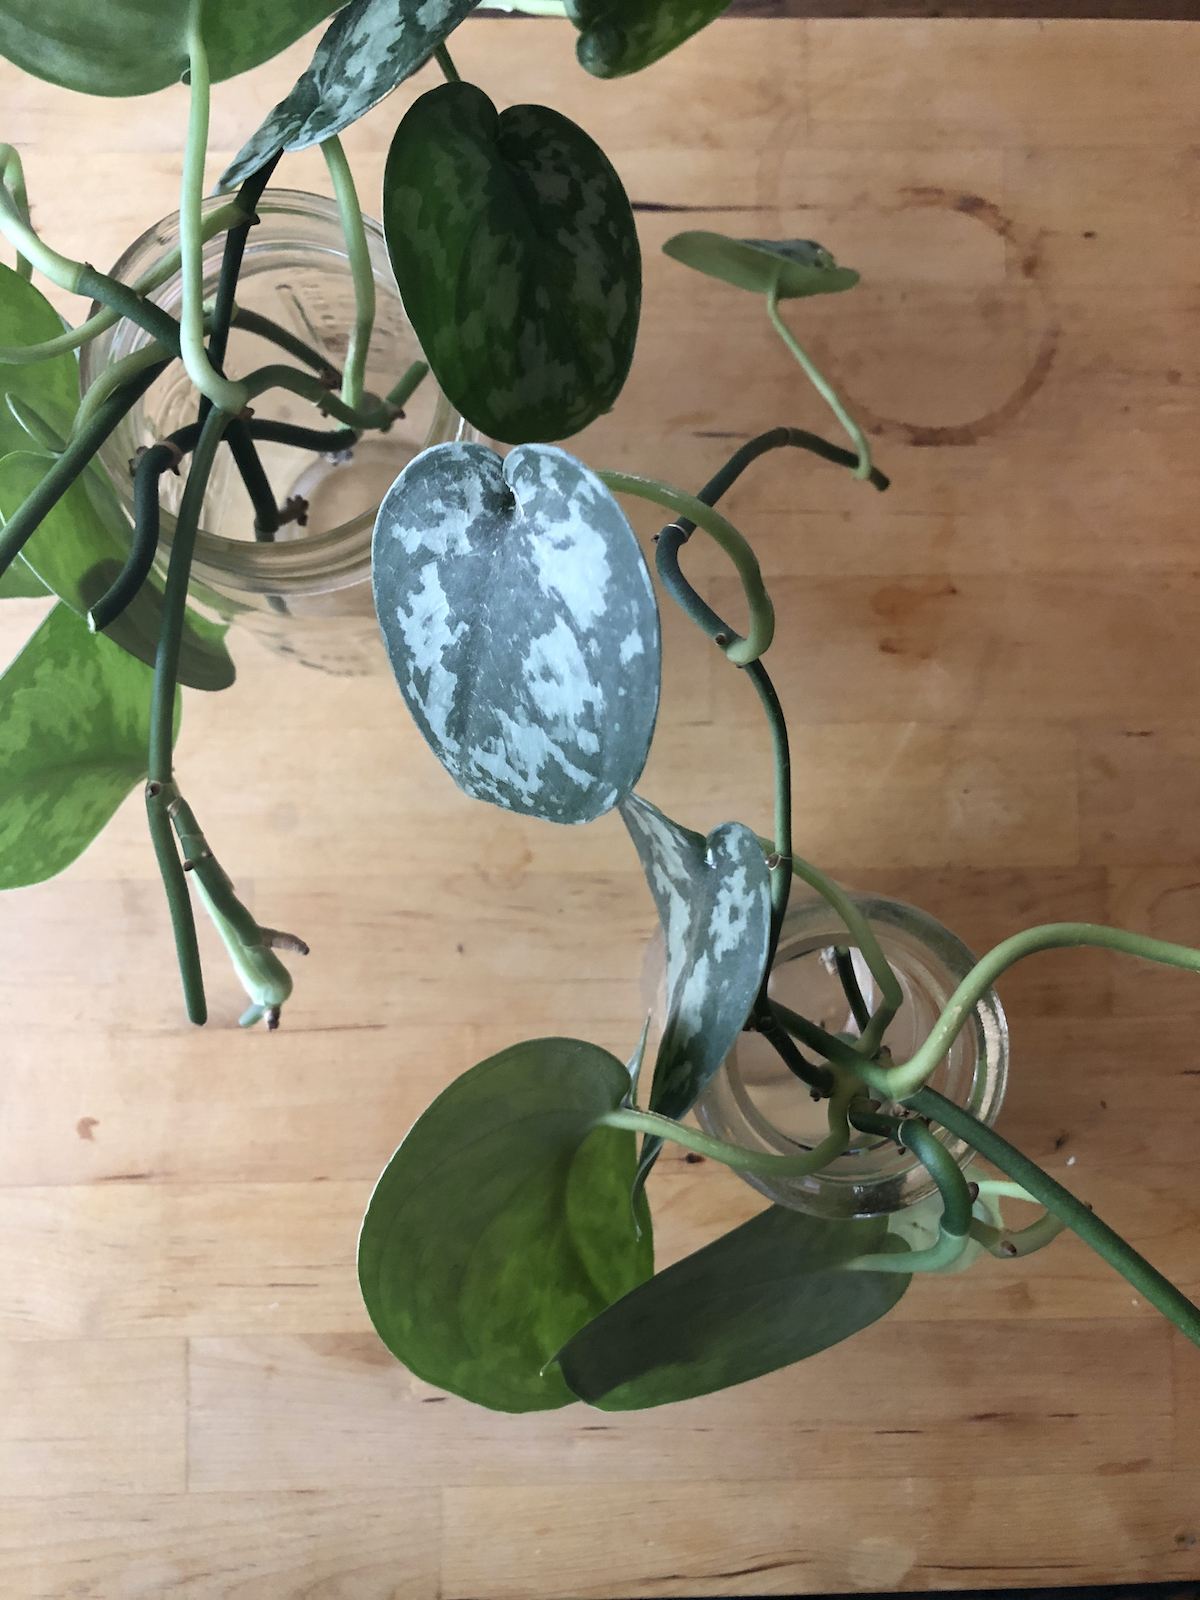 plant-propagation-cuttings-in-jars